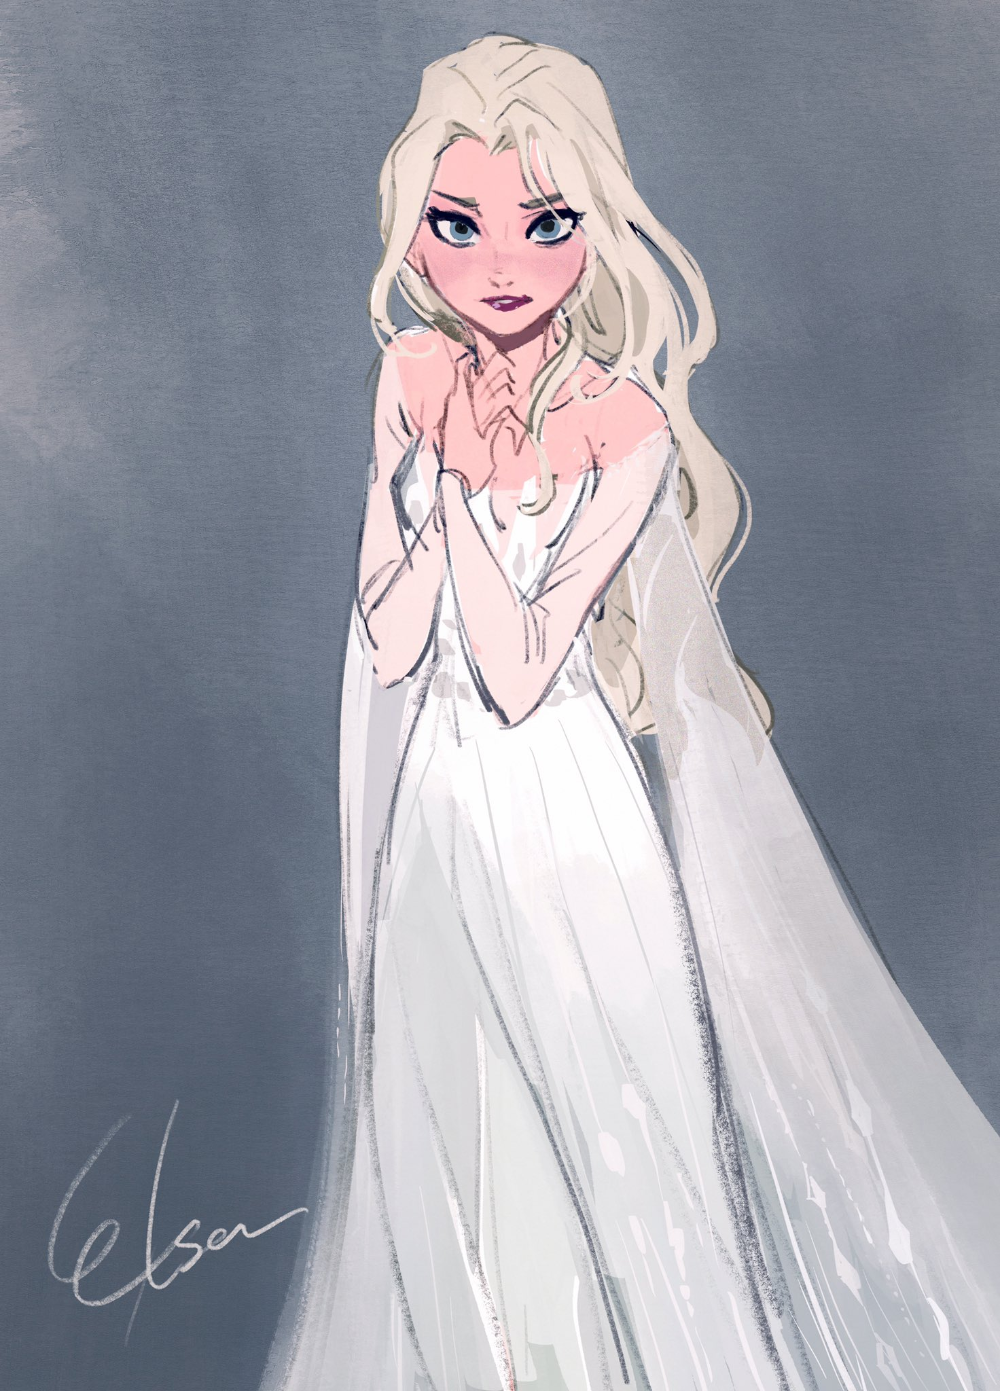 M A S S O On Twitter In 2020 Disney Princess Drawings Disney Princess Art Frozen Disney Movie